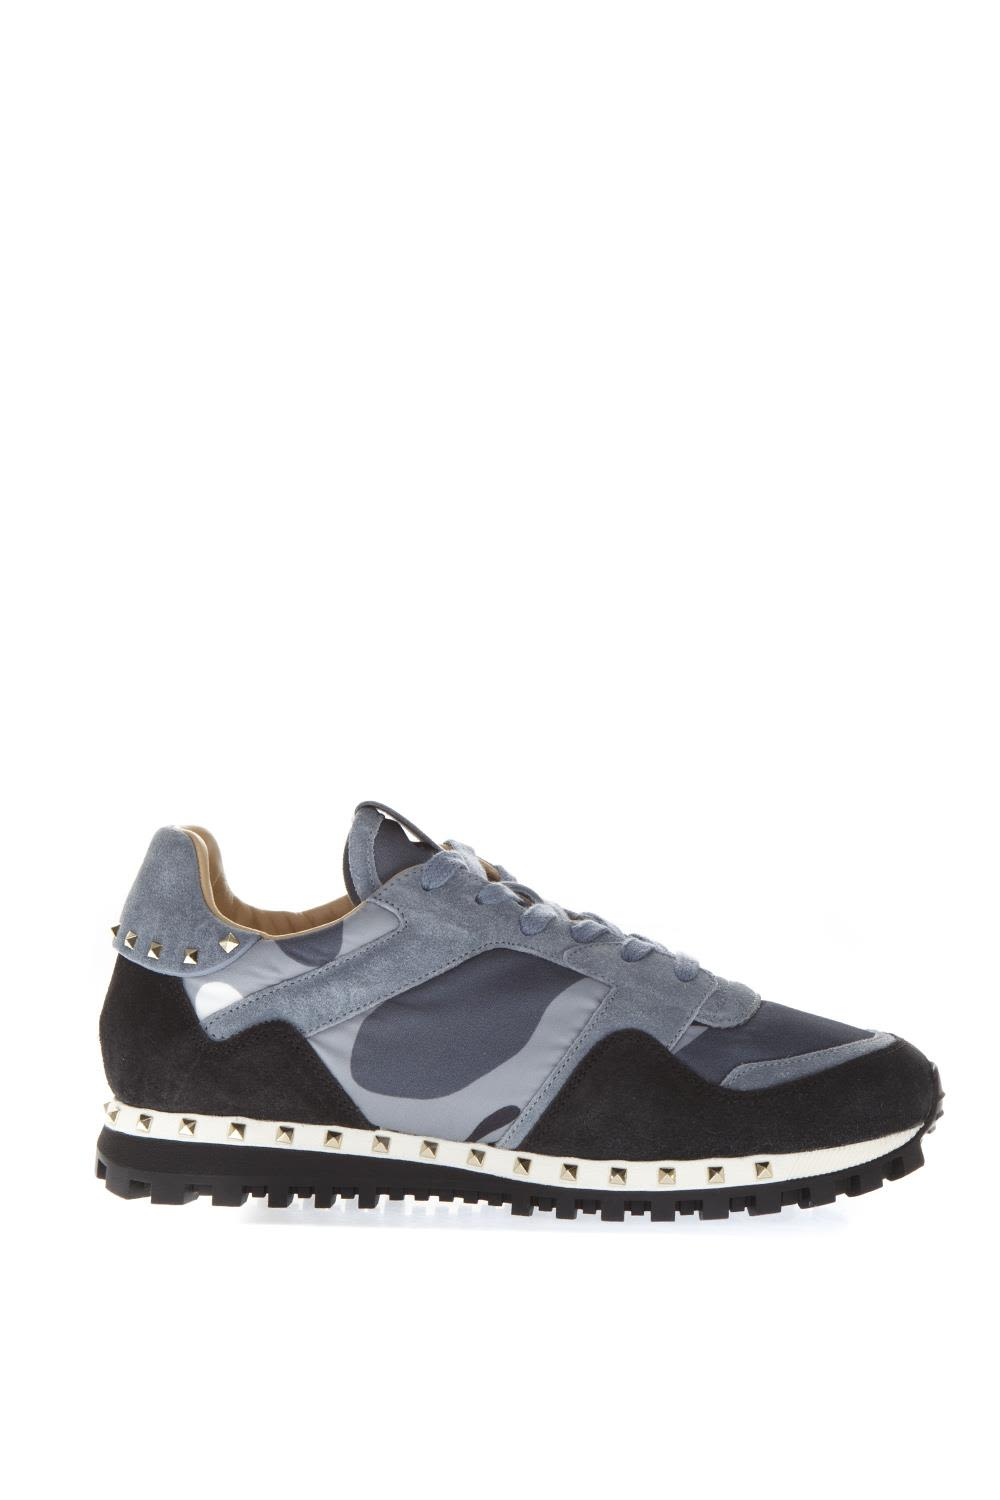 Valentino Garavani Blue Leather And Suede Sneakers